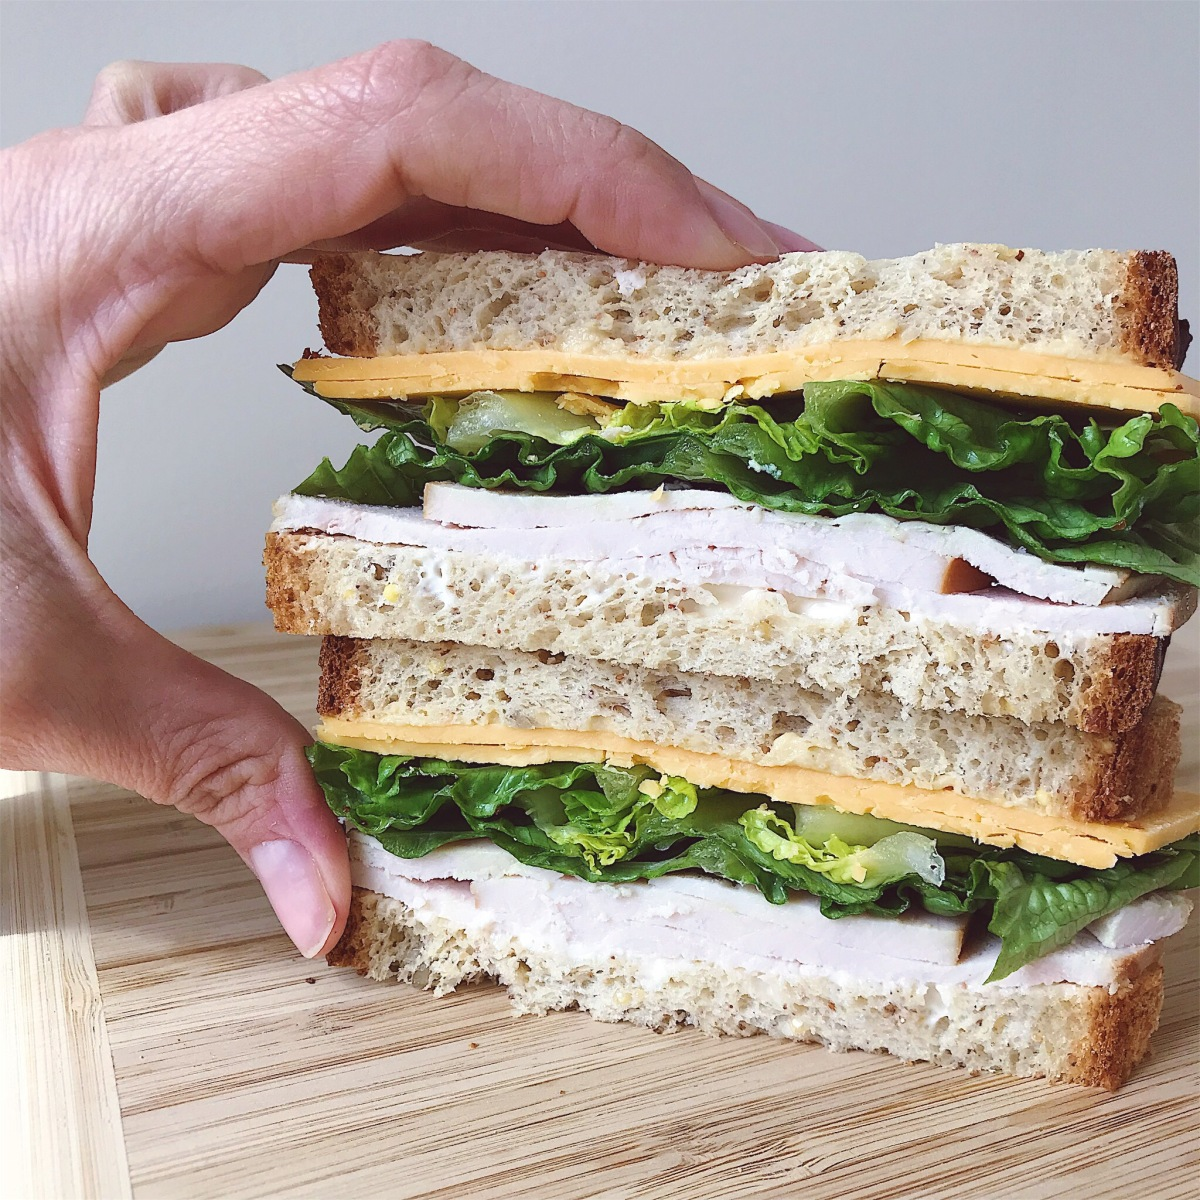 Healthier Sandwiches: 5 Simple Steps